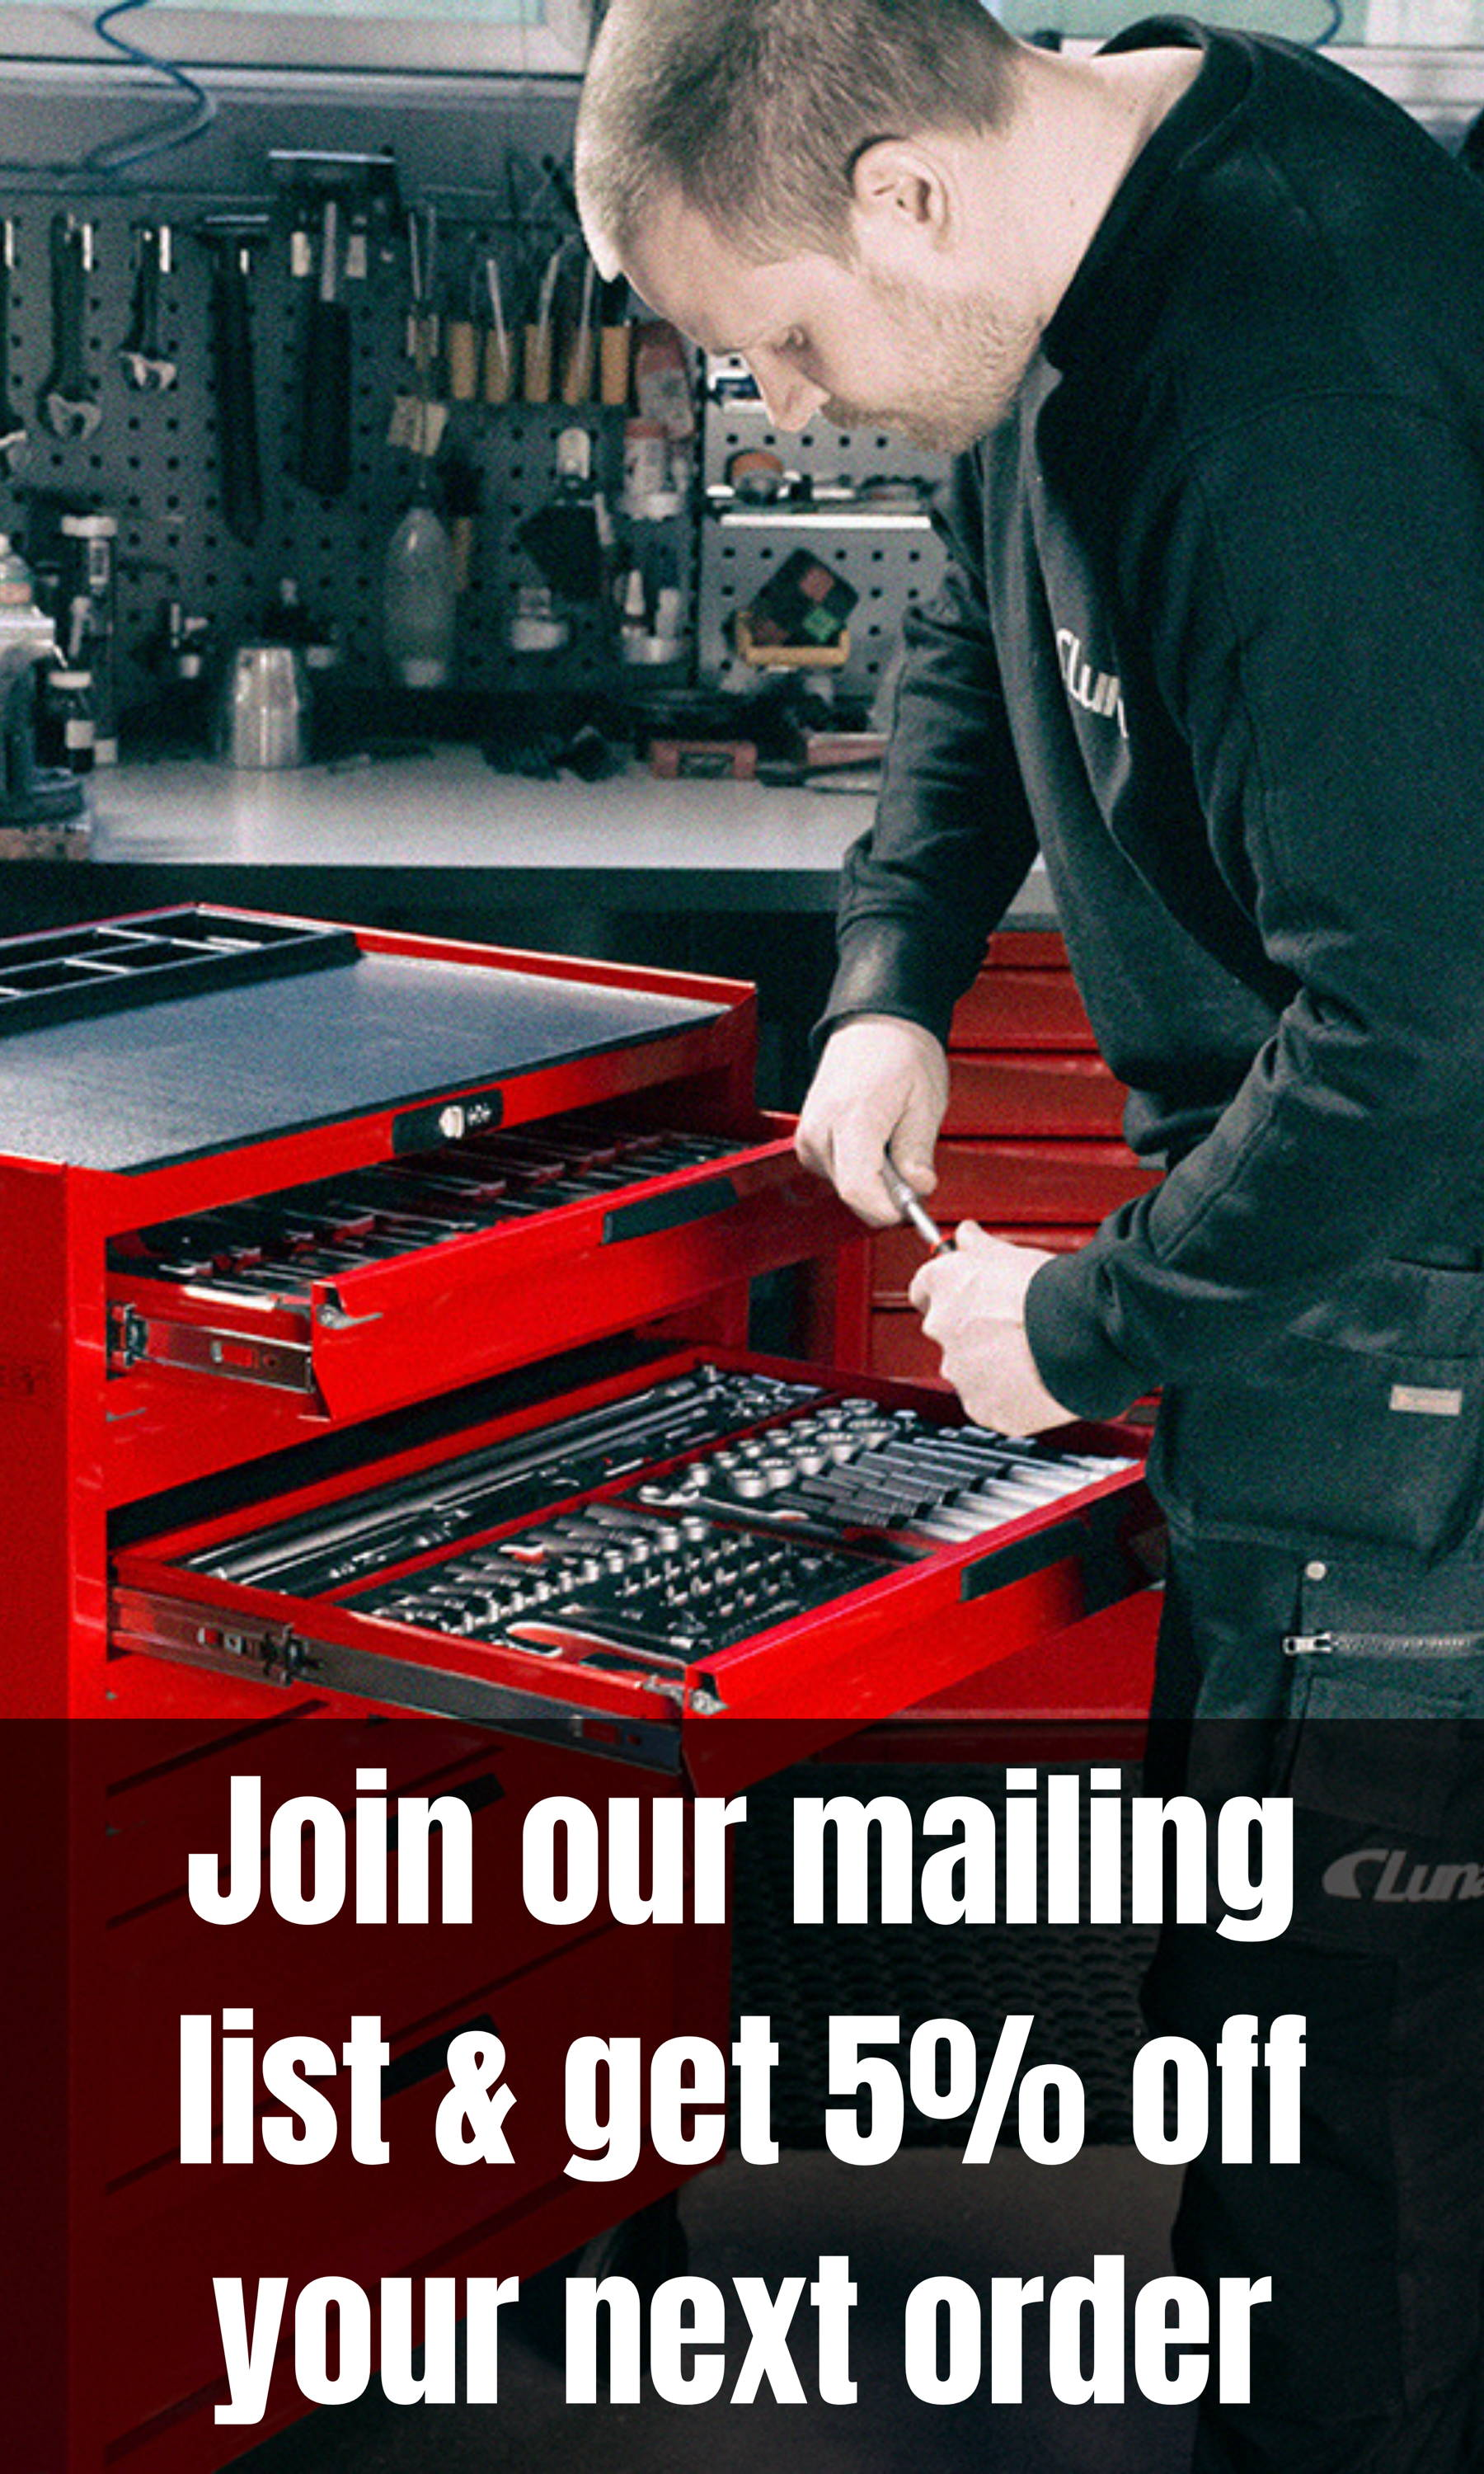 Join our mailing list and get 5% off your next order